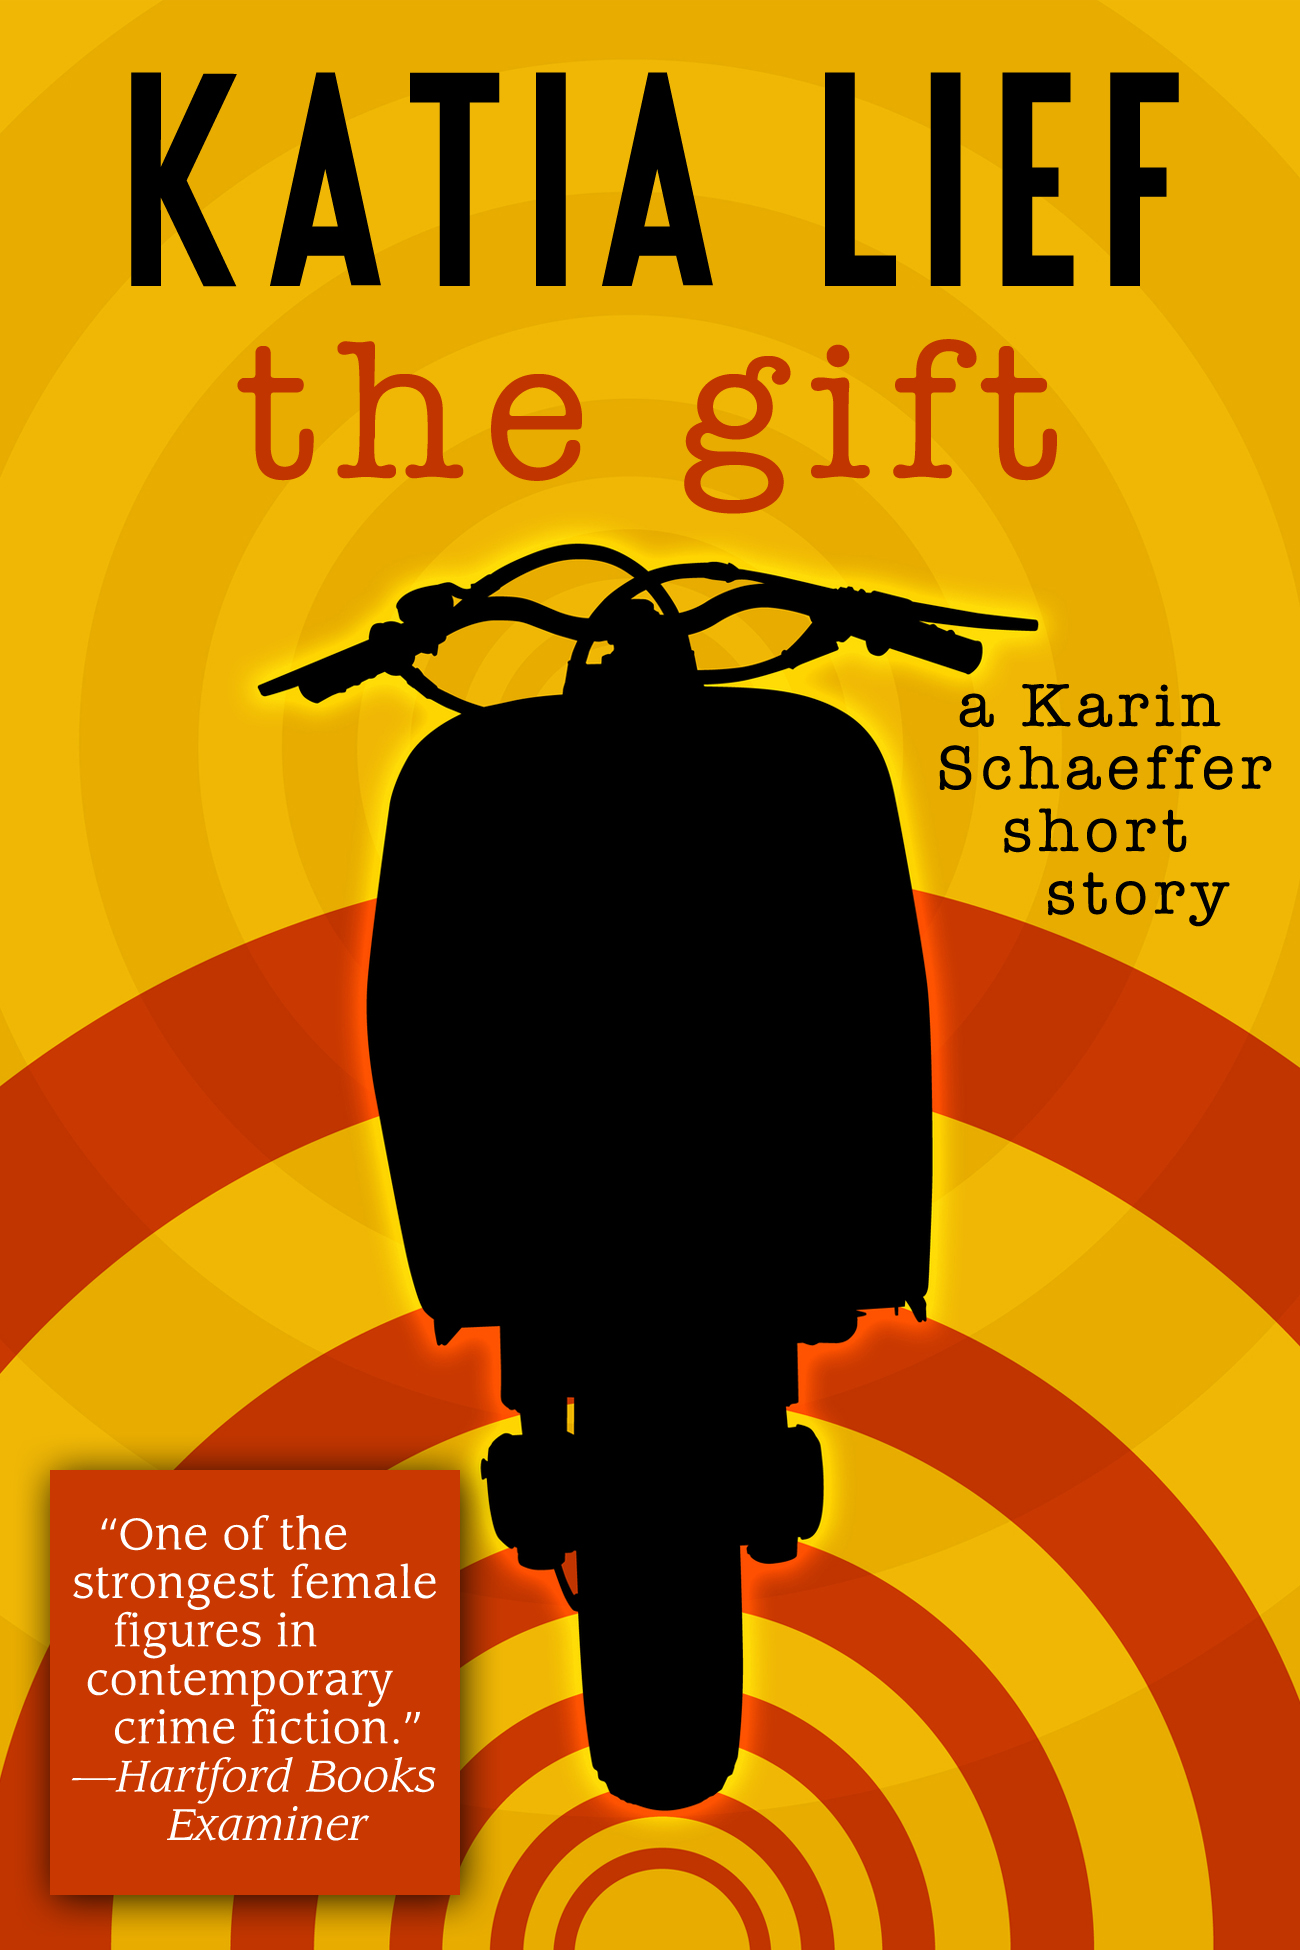 A Karin Schaeffer Christmas story - Karin and Mac enjoy a quiet Christmas morning at home with their family. But after Mac gives Karin a special gift, she finds herself alone in Coney Island on a cold, winter day with a band of misfits who want her gift for themselves.Learn More